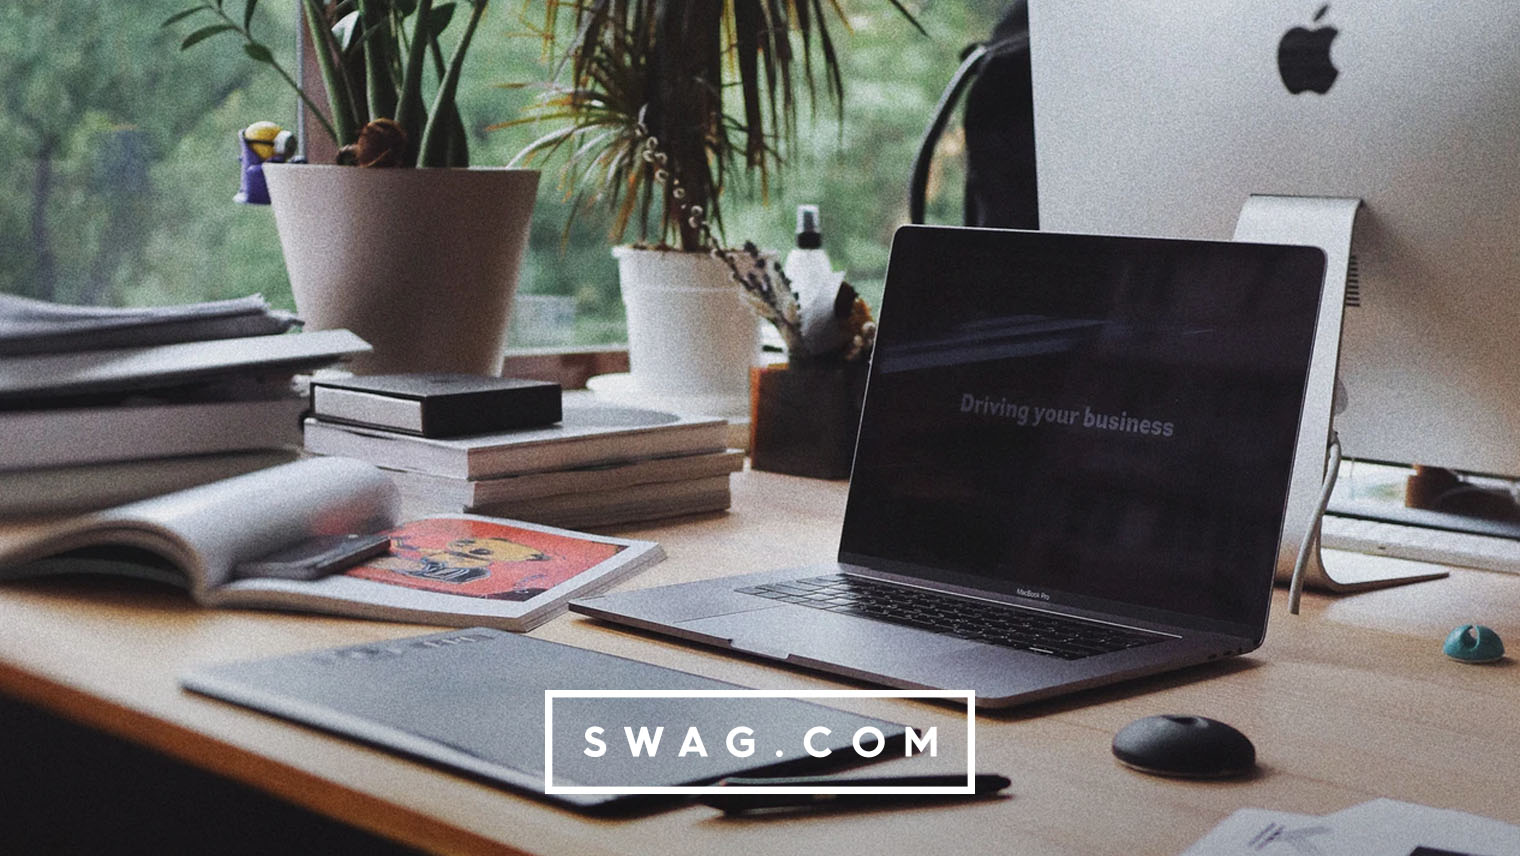 Swag.com Announces Incentives to Custom Promo Products With Swag Levels